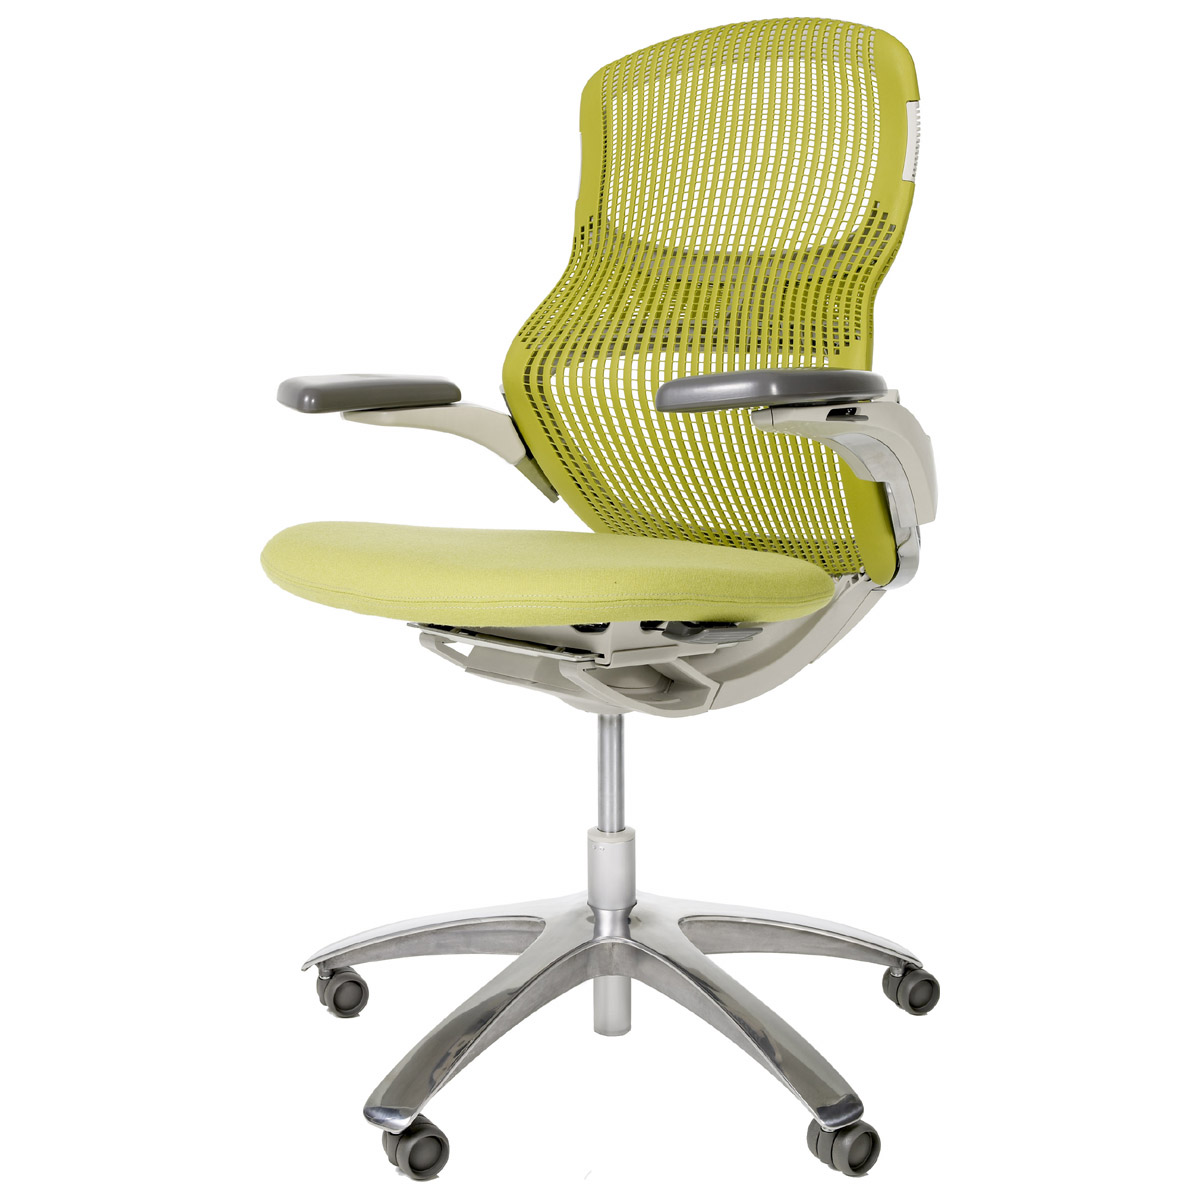 Knoll generation chair shop knoll office chairs - Office desk chair ...